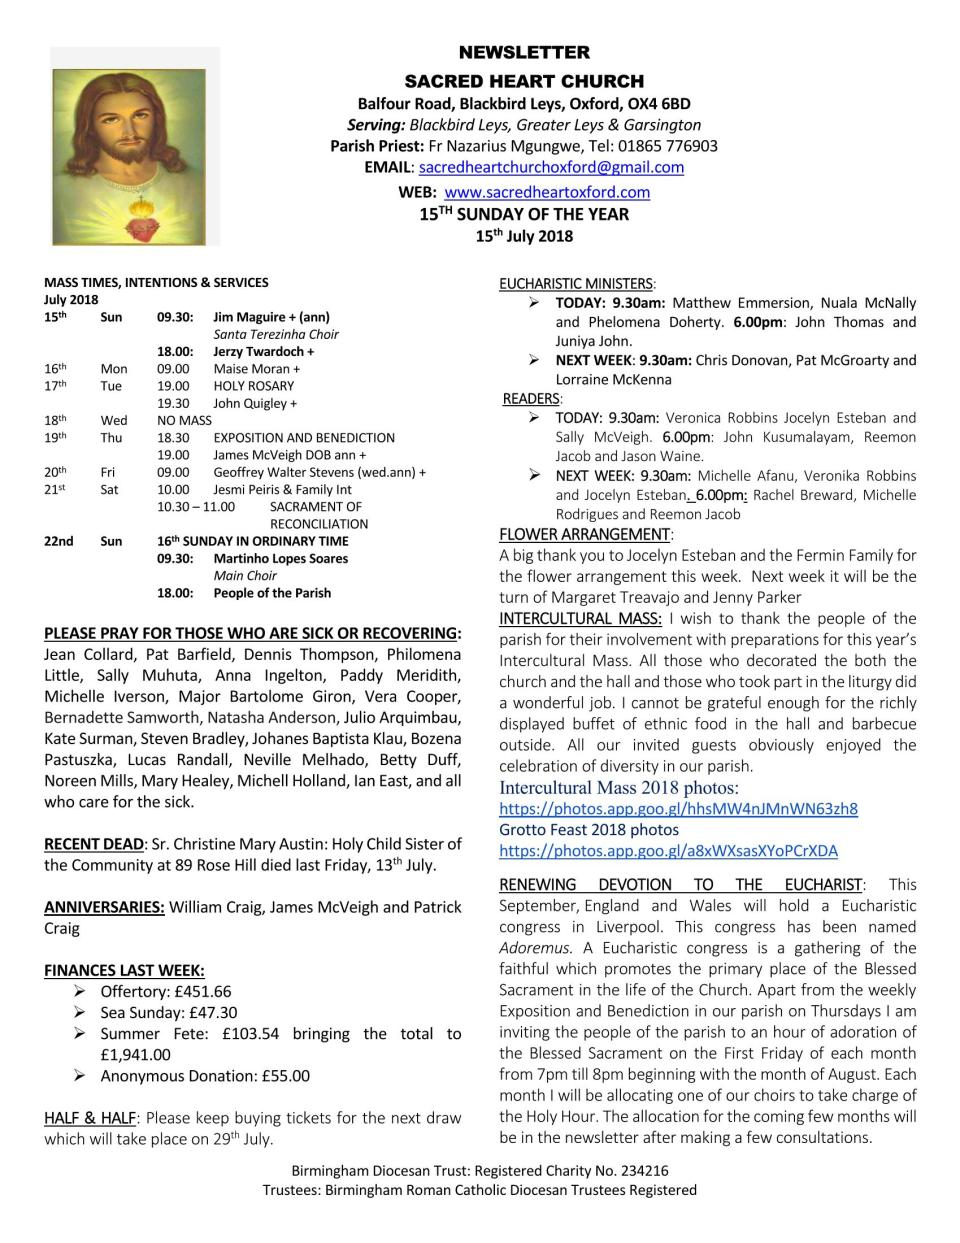 15th July, 2018 - 15th Sunday of the Year_Page_1